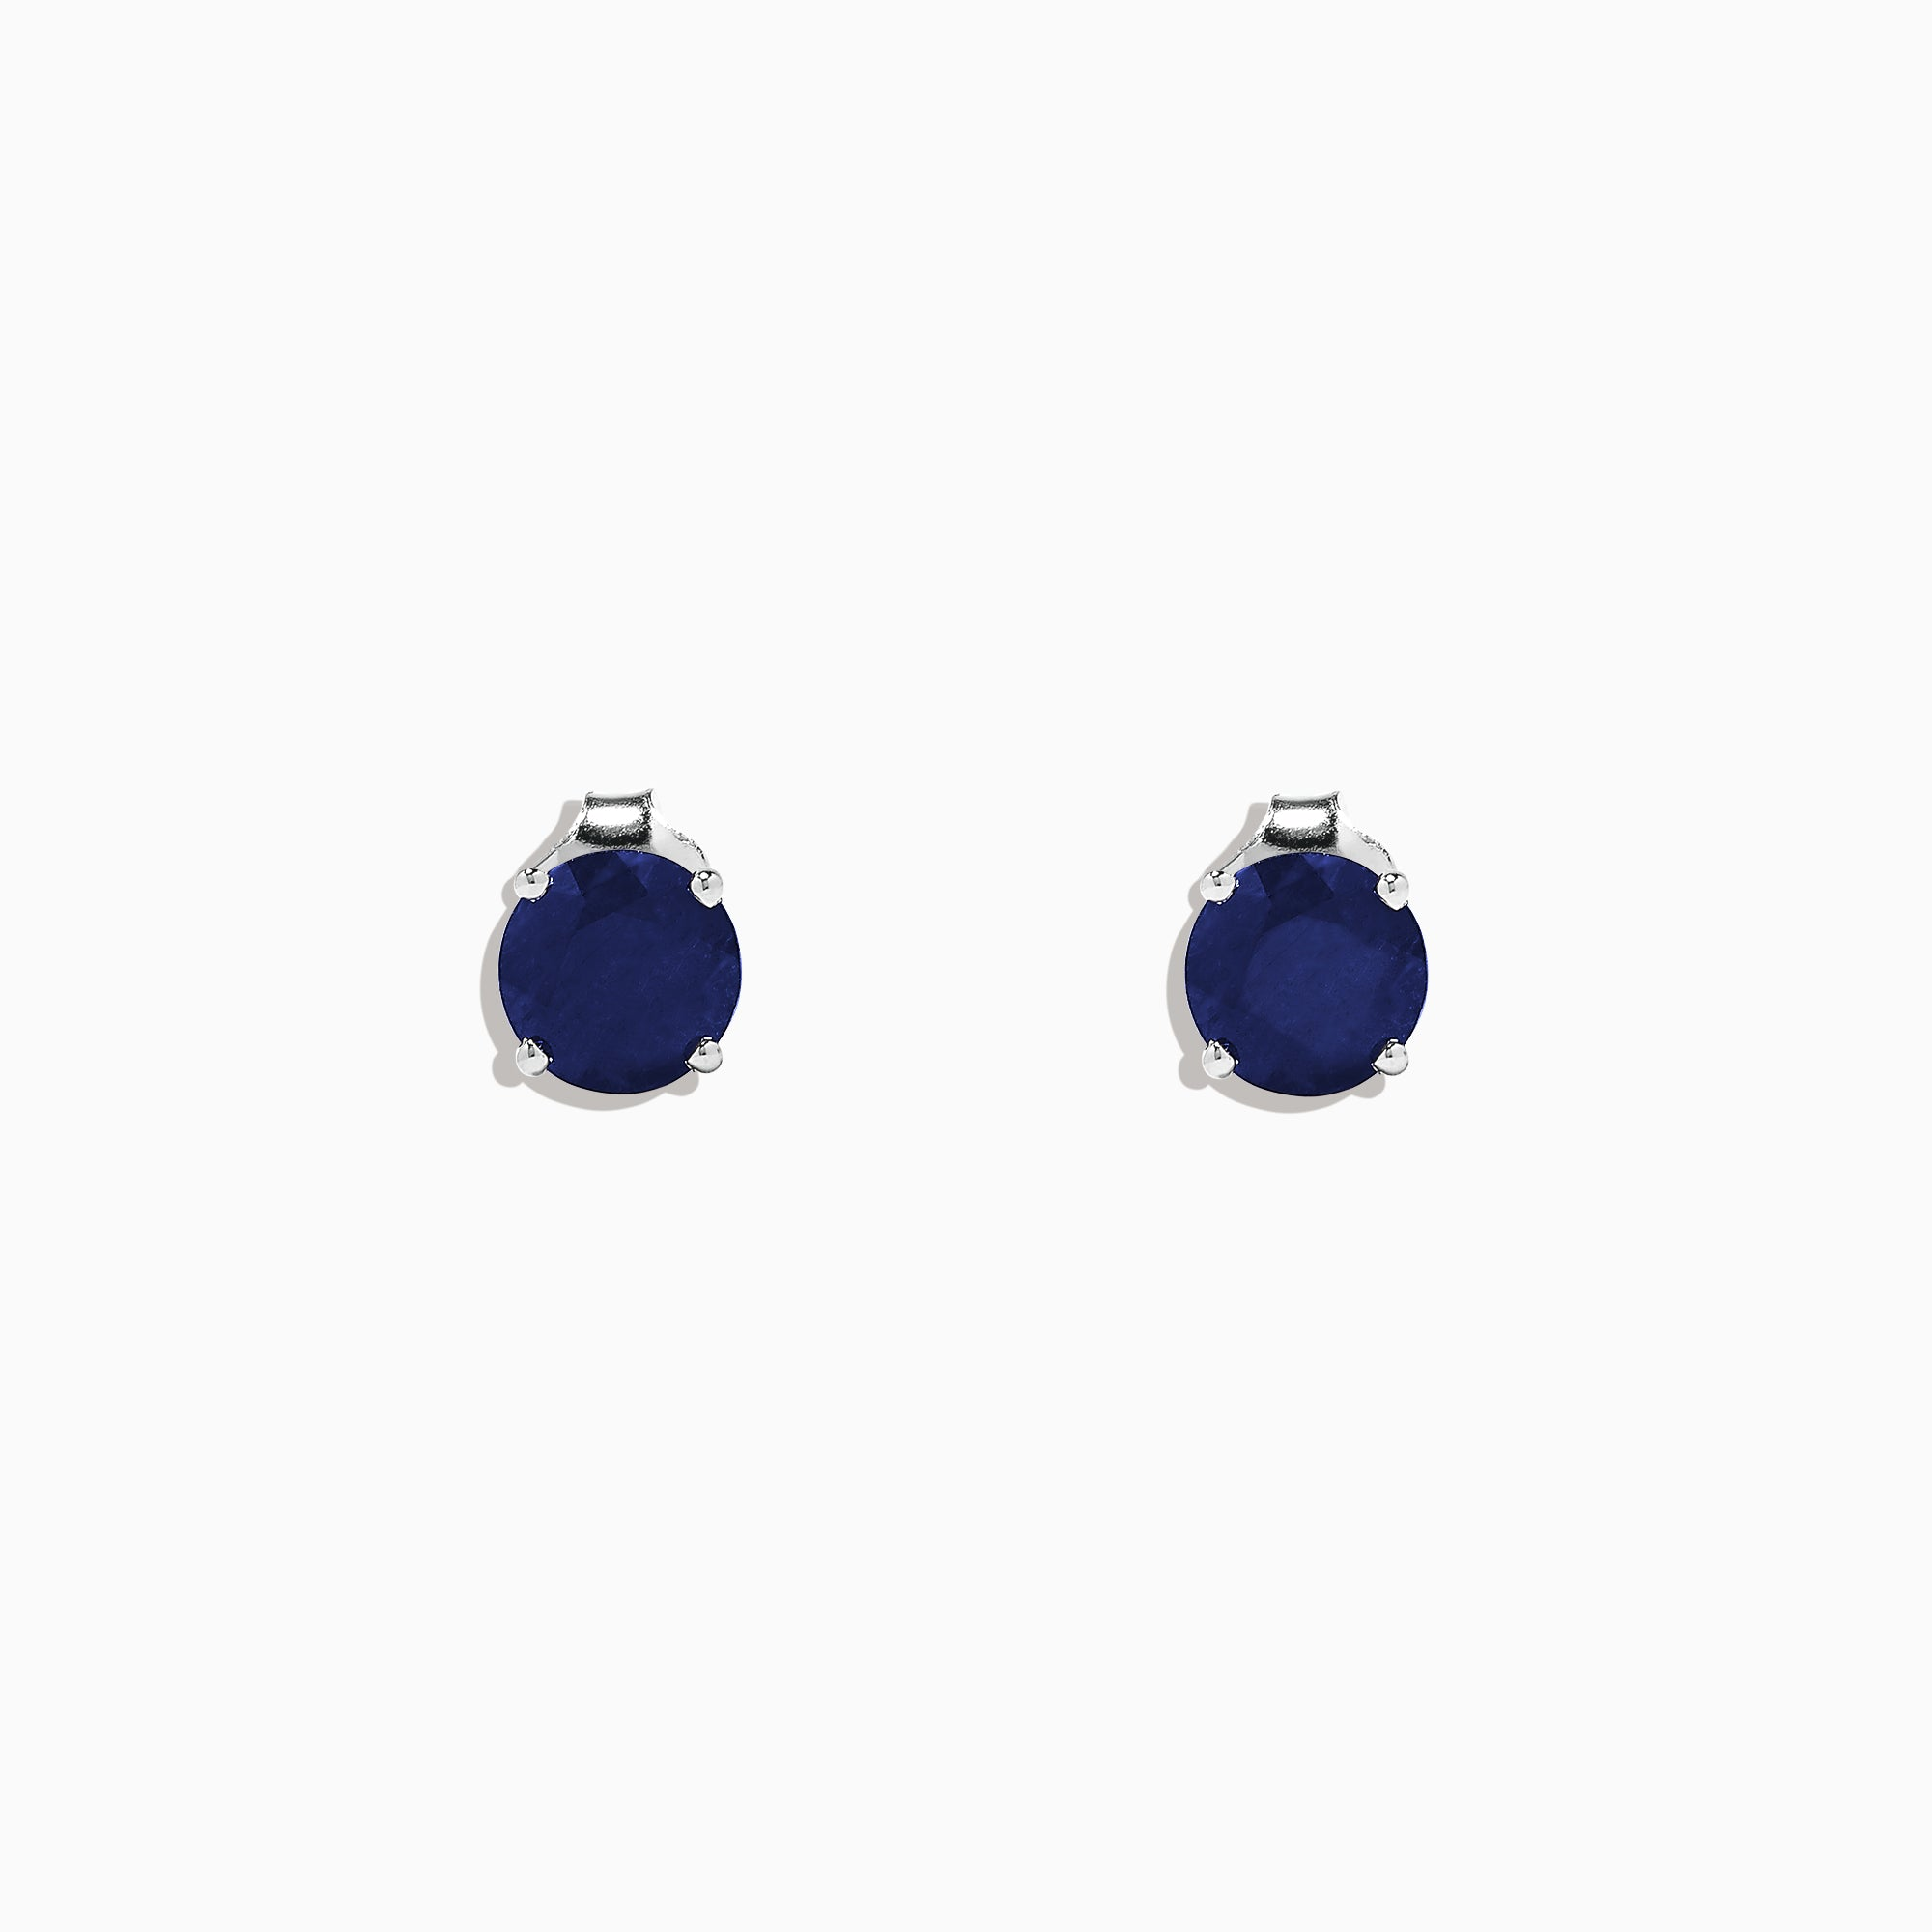 Effy Royale Bleu 14K White Gold Sapphire Stud Earrings, 2.00 TCW